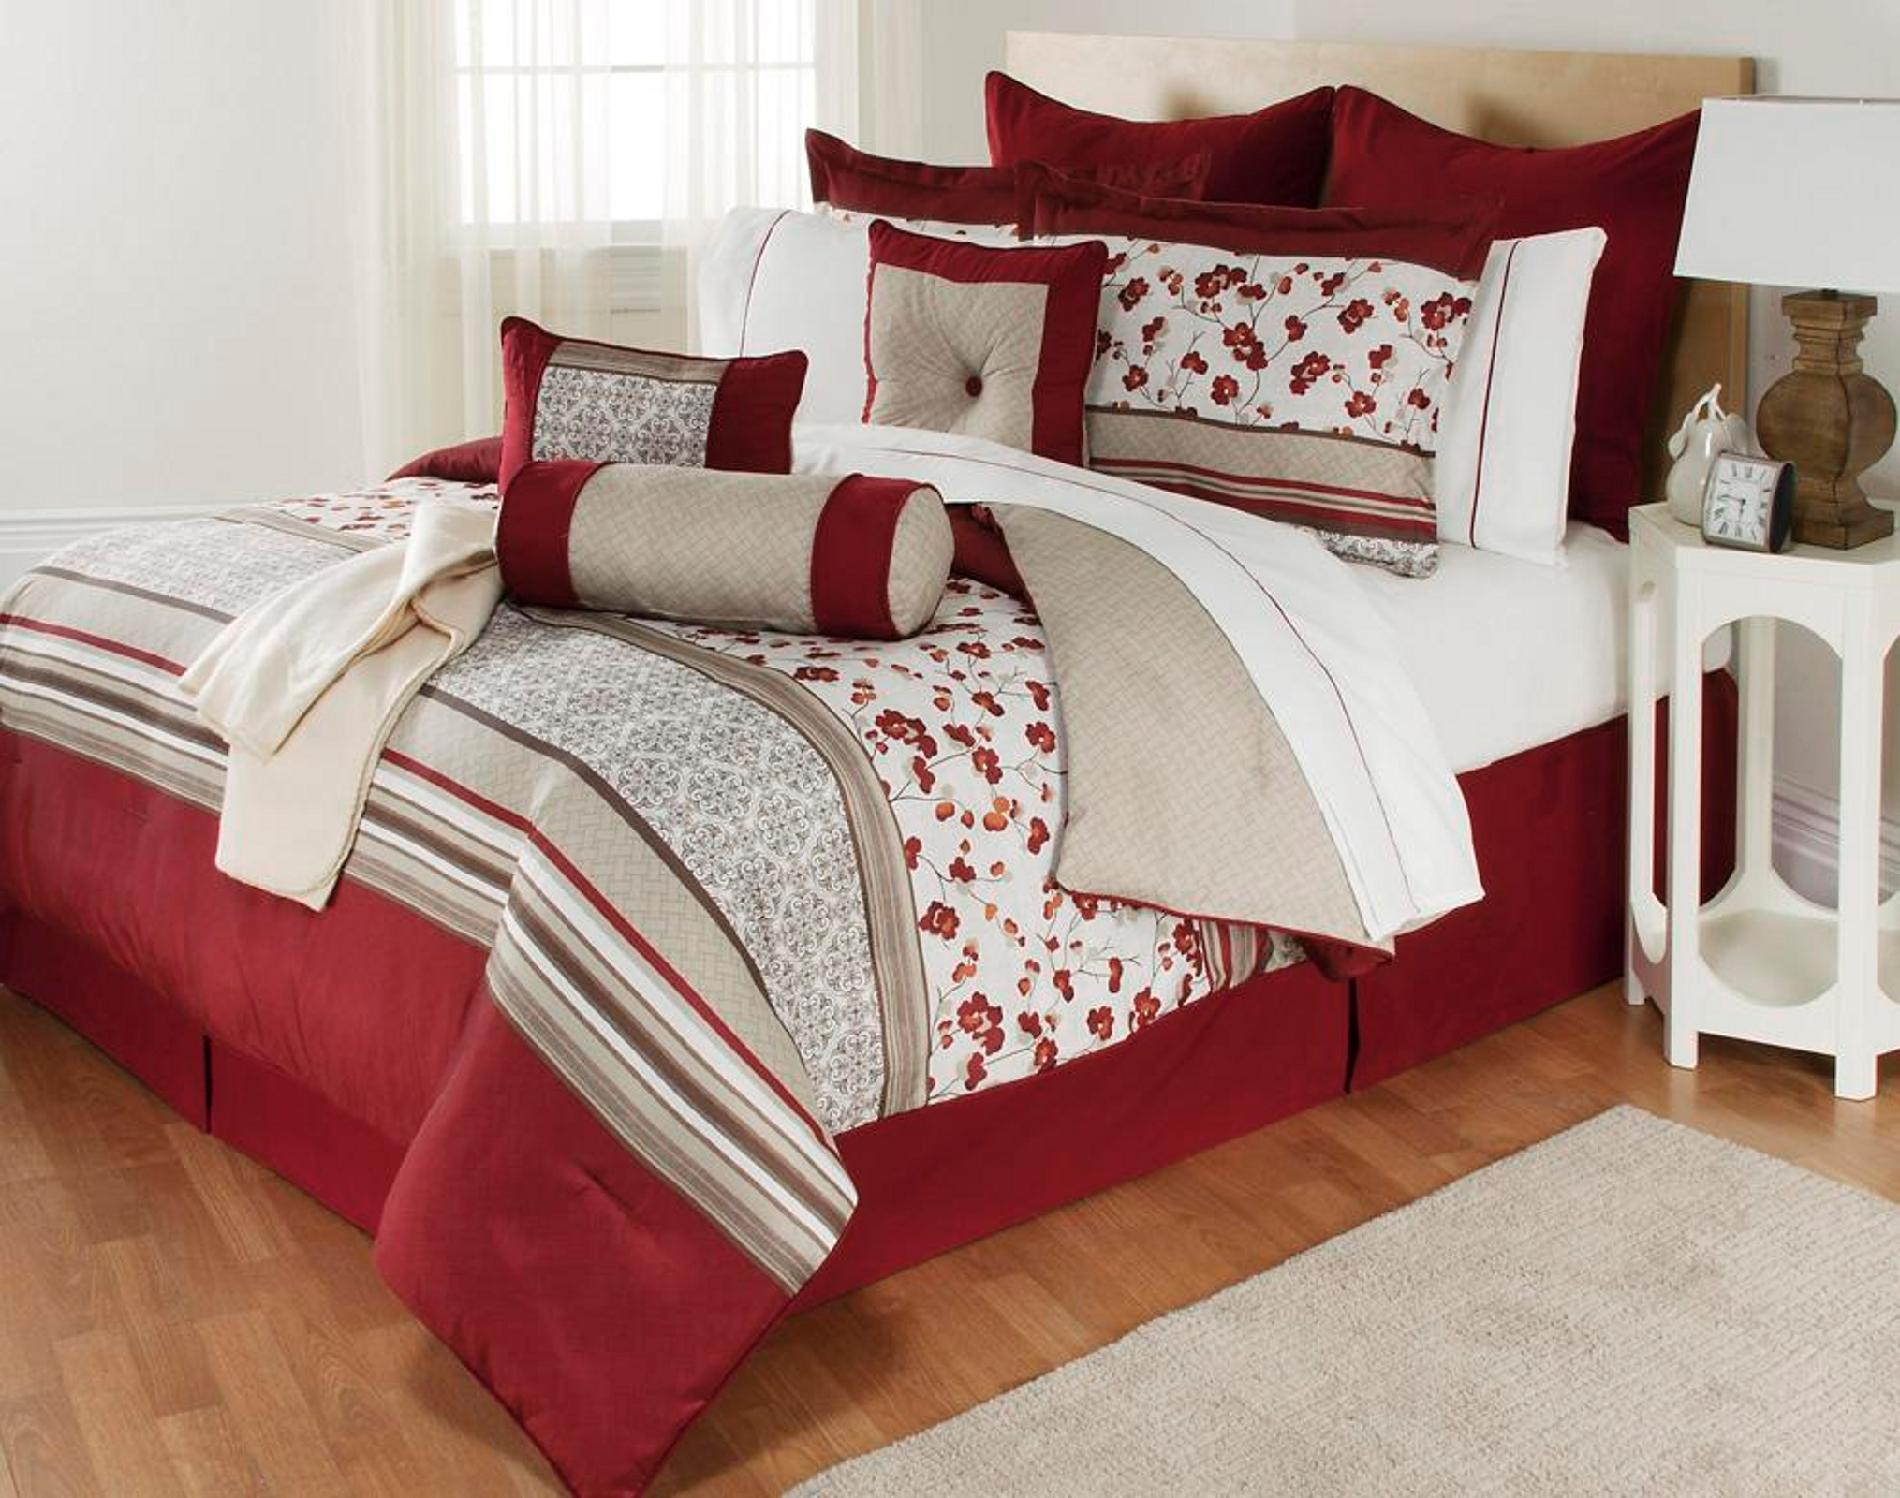 Kmart Coupon Code | Kmart Bed Sets | Kmart Bed Sets